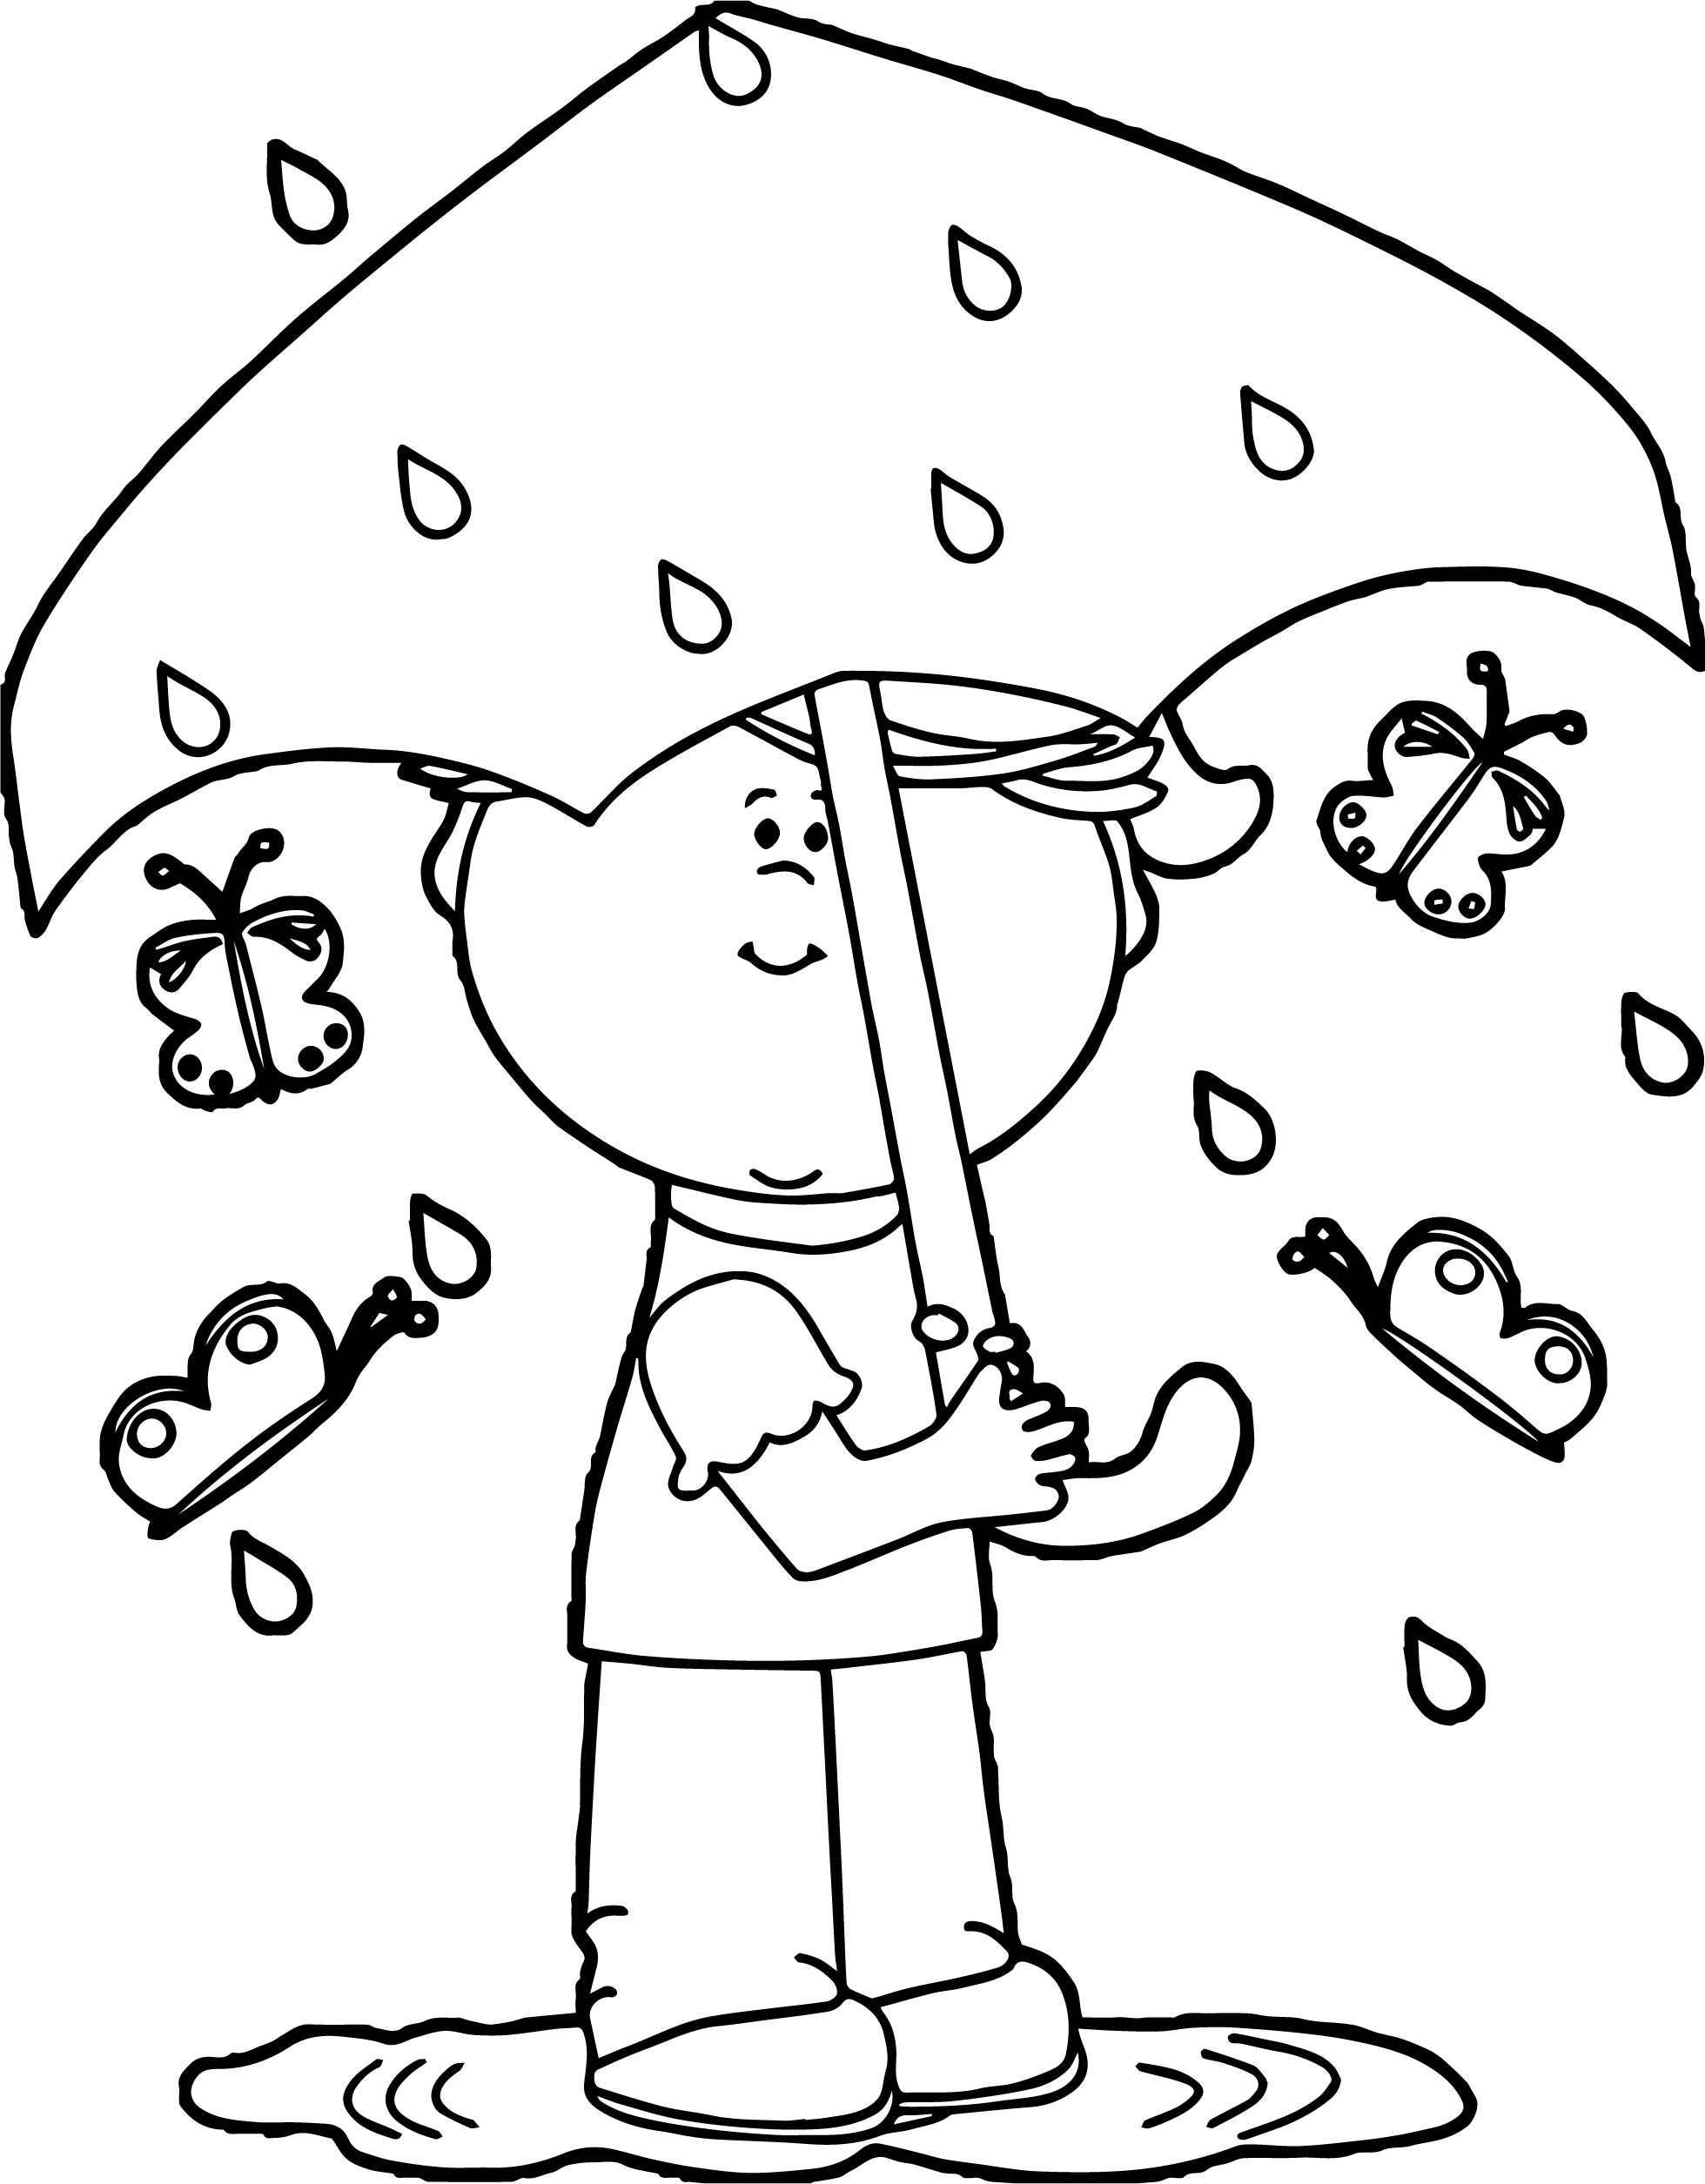 in spring rain coloring page wecoloringpage